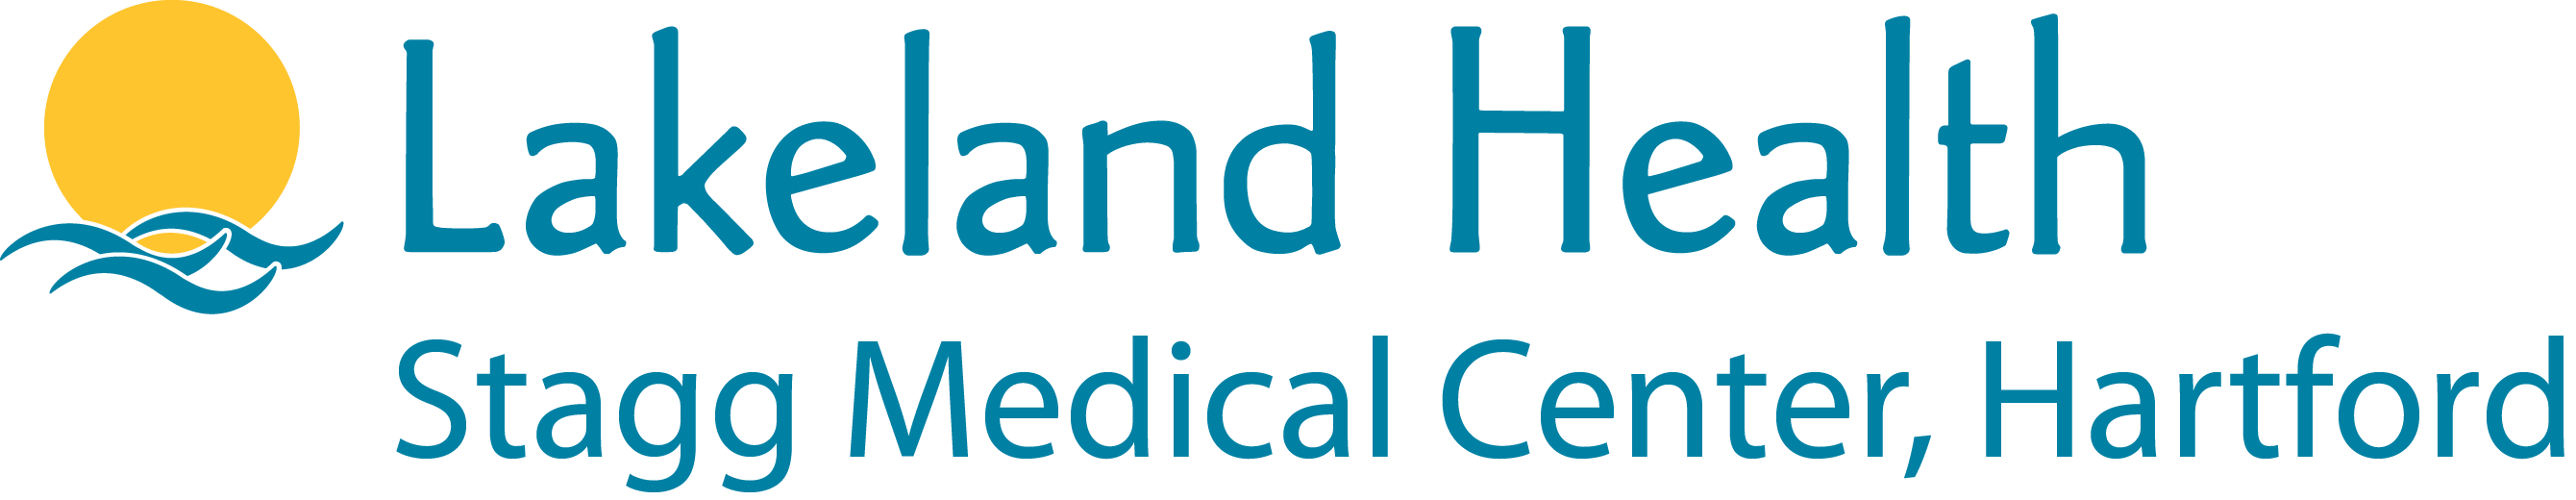 Stagg Medical Center - A Lakeland Health Affiliate